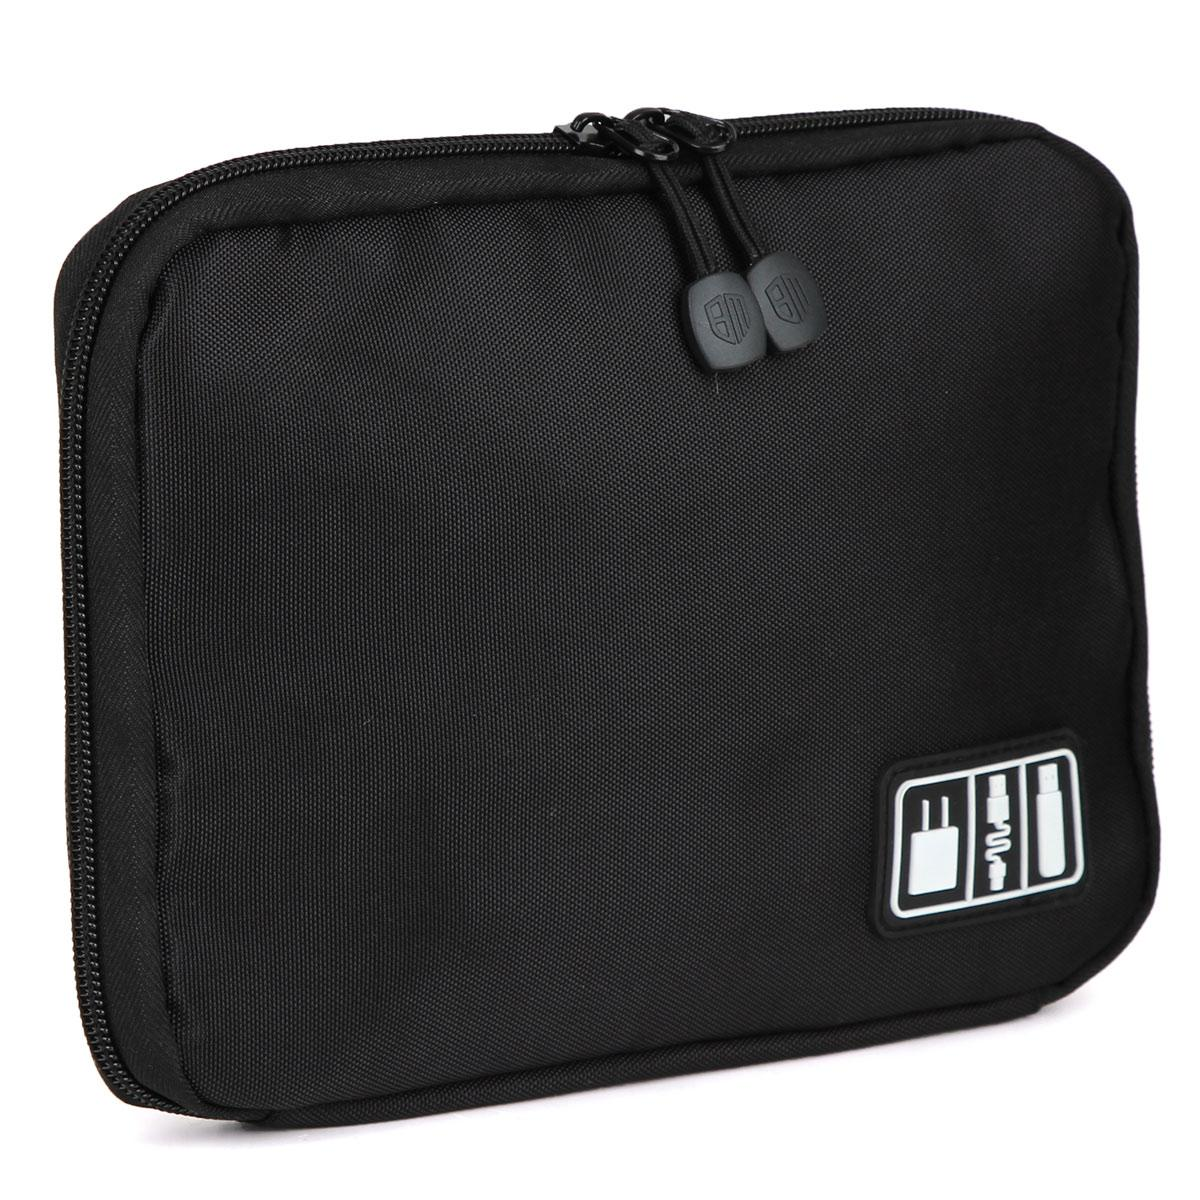 Large Cable Organizer Bags Can Put Hard Drive Cables USB Flash Drives Travel Case Digital Storage Bag Electronic Products(China (Mainland))